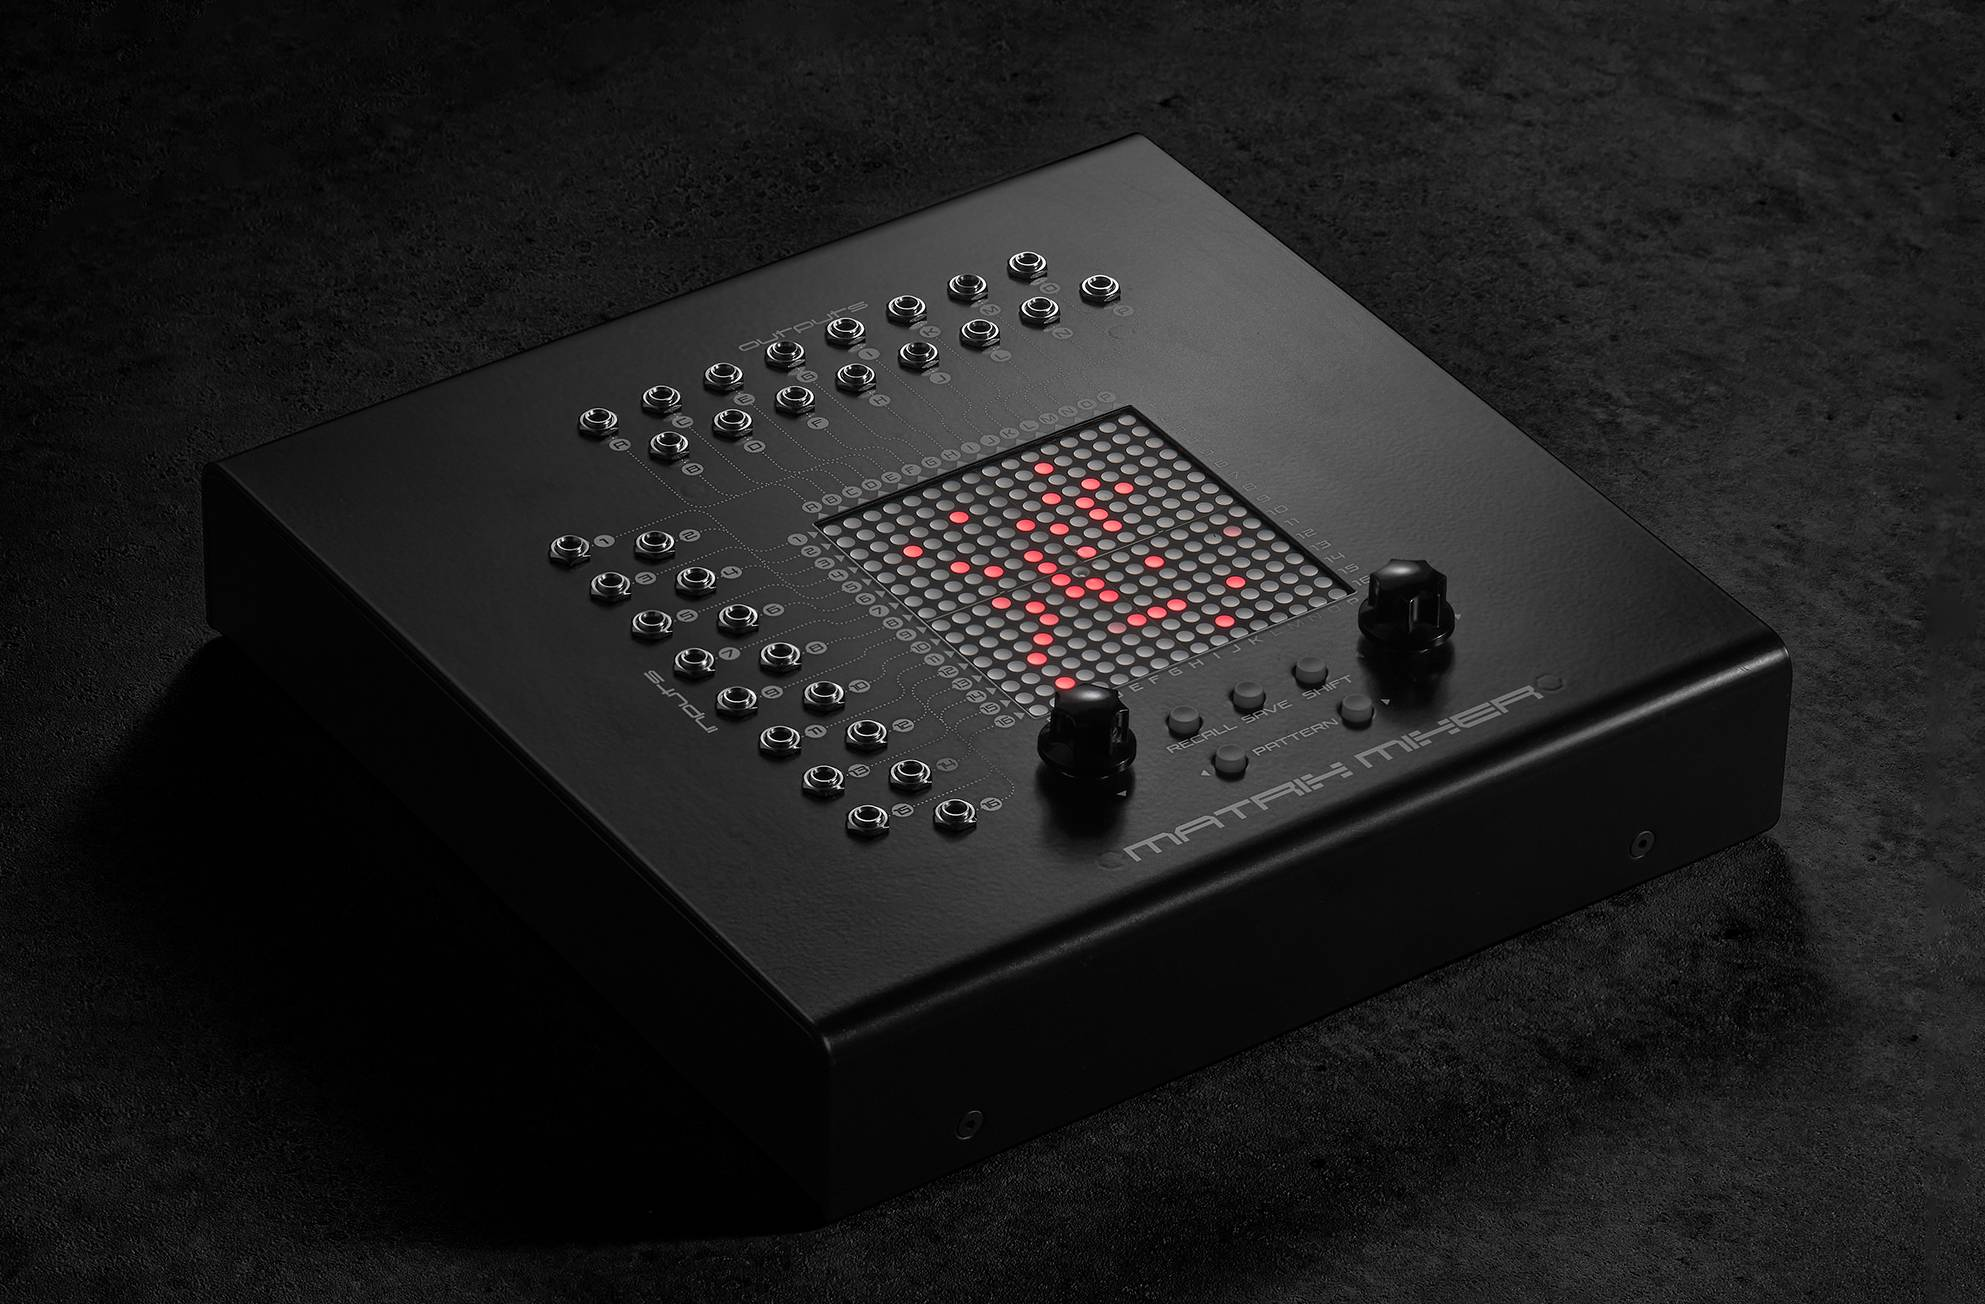 Erica Synths Matrix Mixer claims to be able to re-patch your Eurorack system